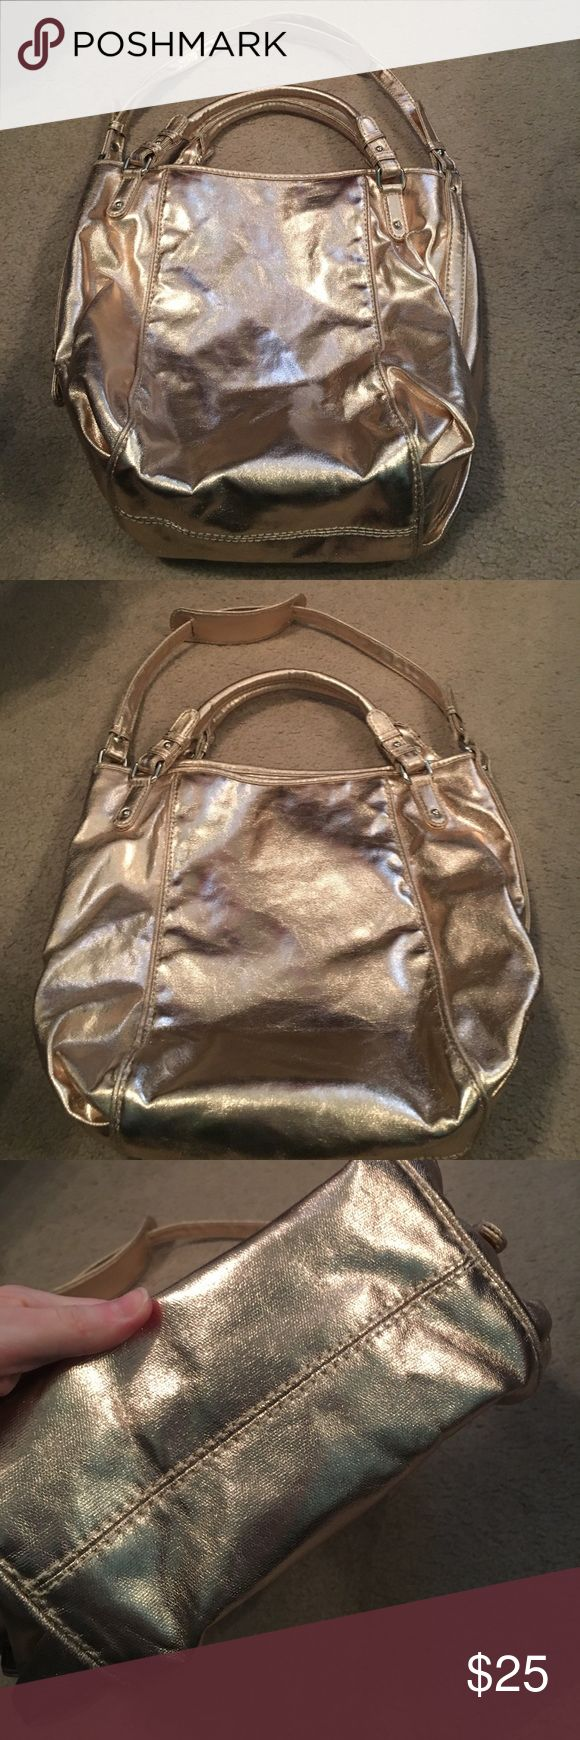 Big Gap Bag! Gold bag from Gap. Big enough to fit all the baby stuff or for a small trip! So cute! NWT. GAP Bags